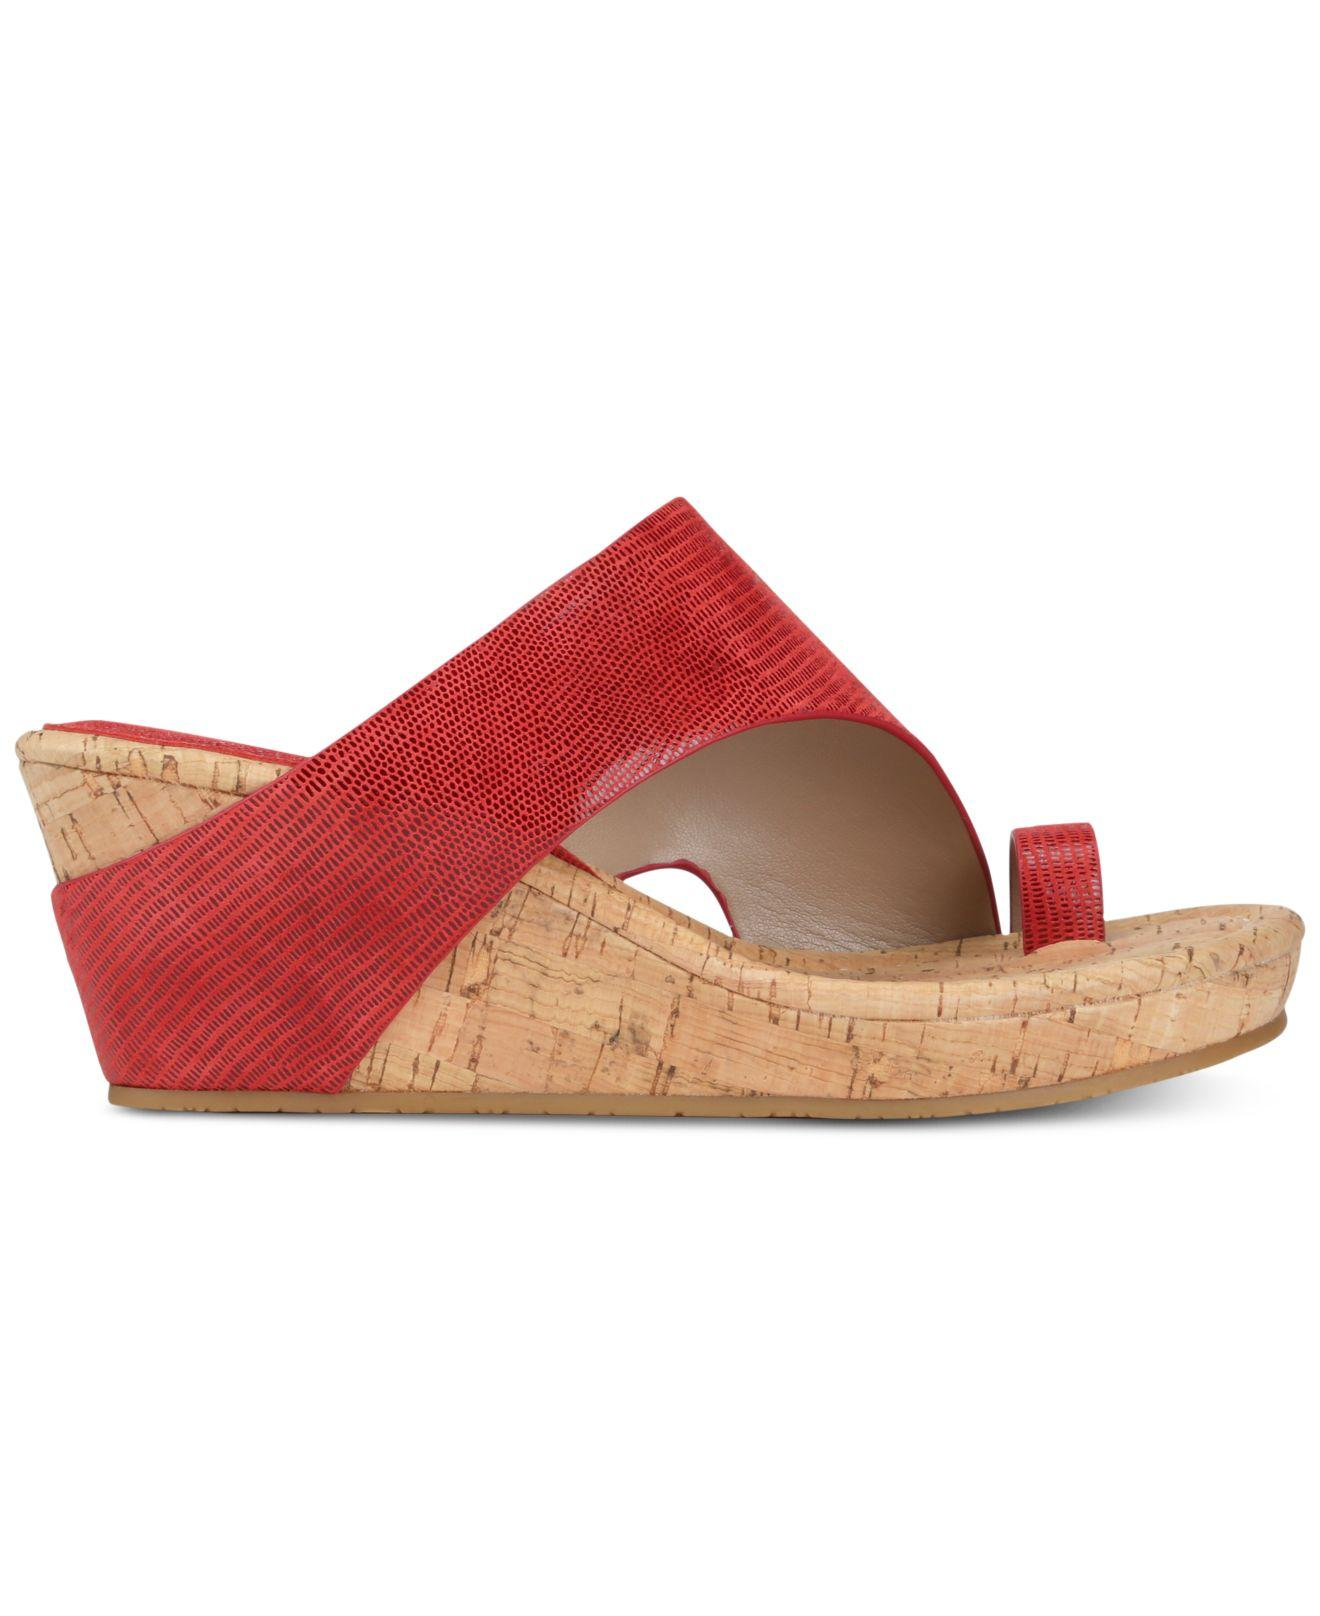 ab1305053650 Lyst - Donald J Pliner Gyer Wedge Sandals in Red - Save 25%